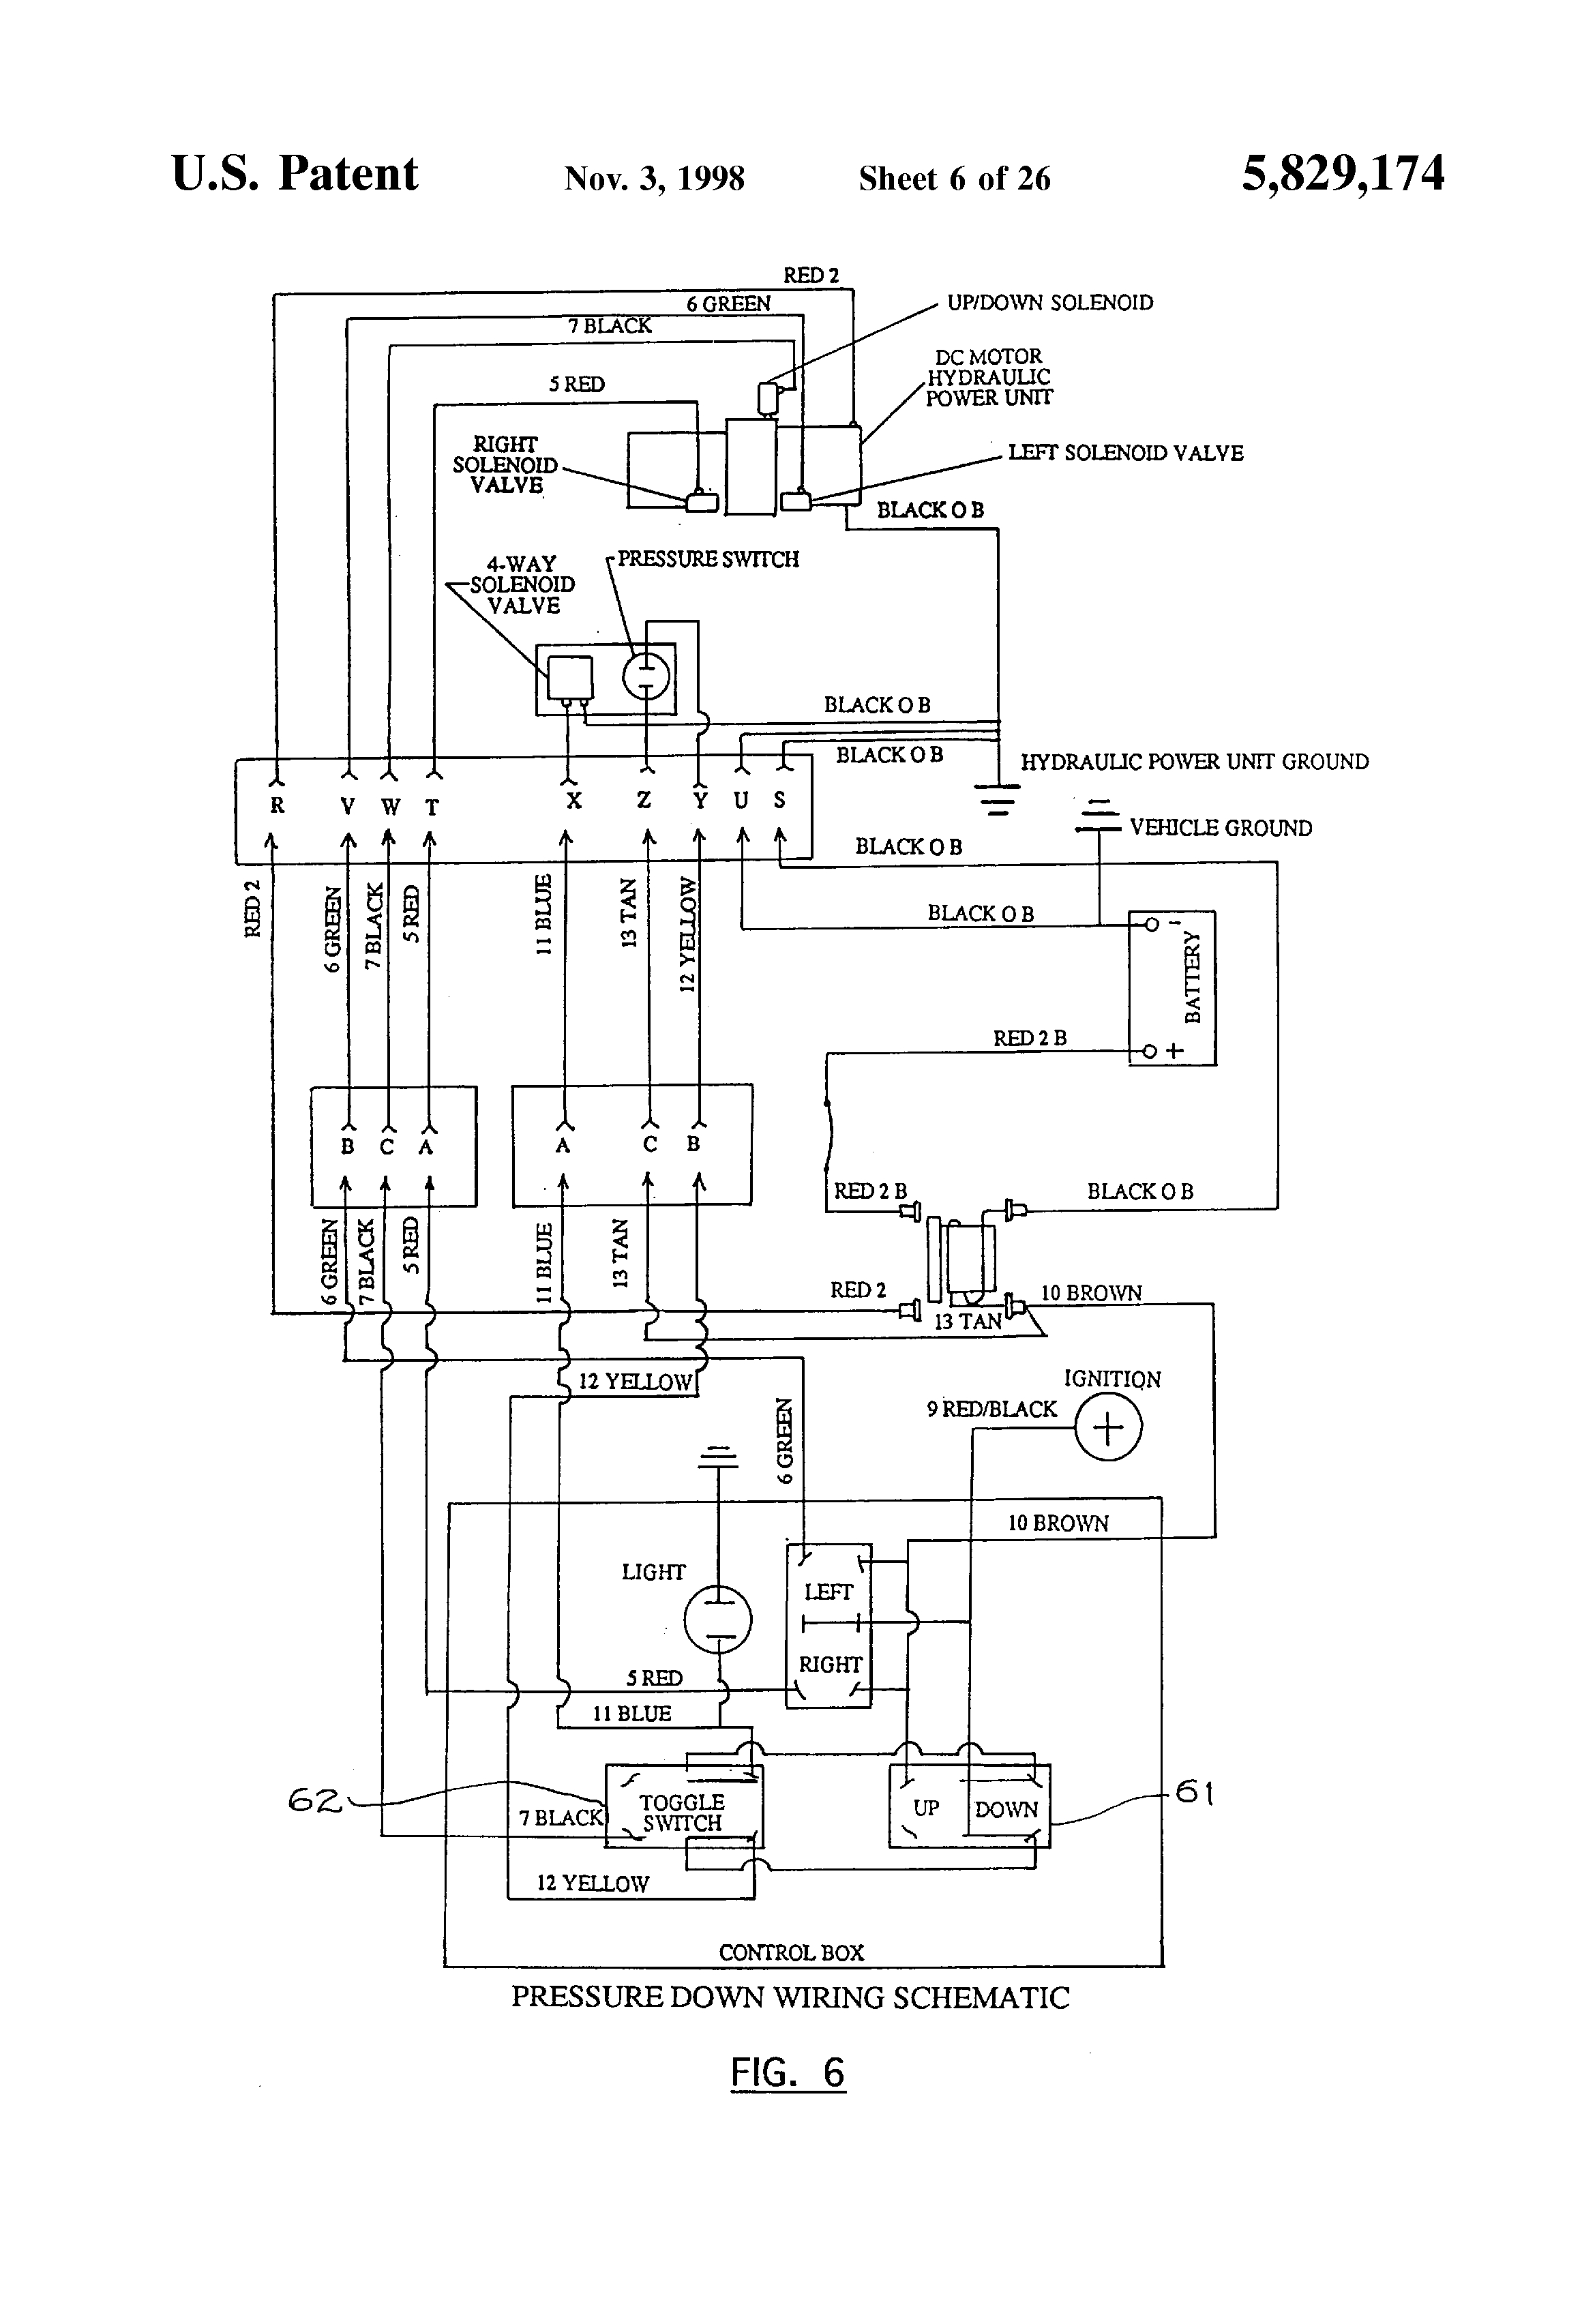 monarch hydraulic pump wiring diagram Collection-Monarch Snow Plow Pump Wiring Diagram Snow Plow Wiring Diagram Elegant Famous Plow solenoid Wiring 5-h